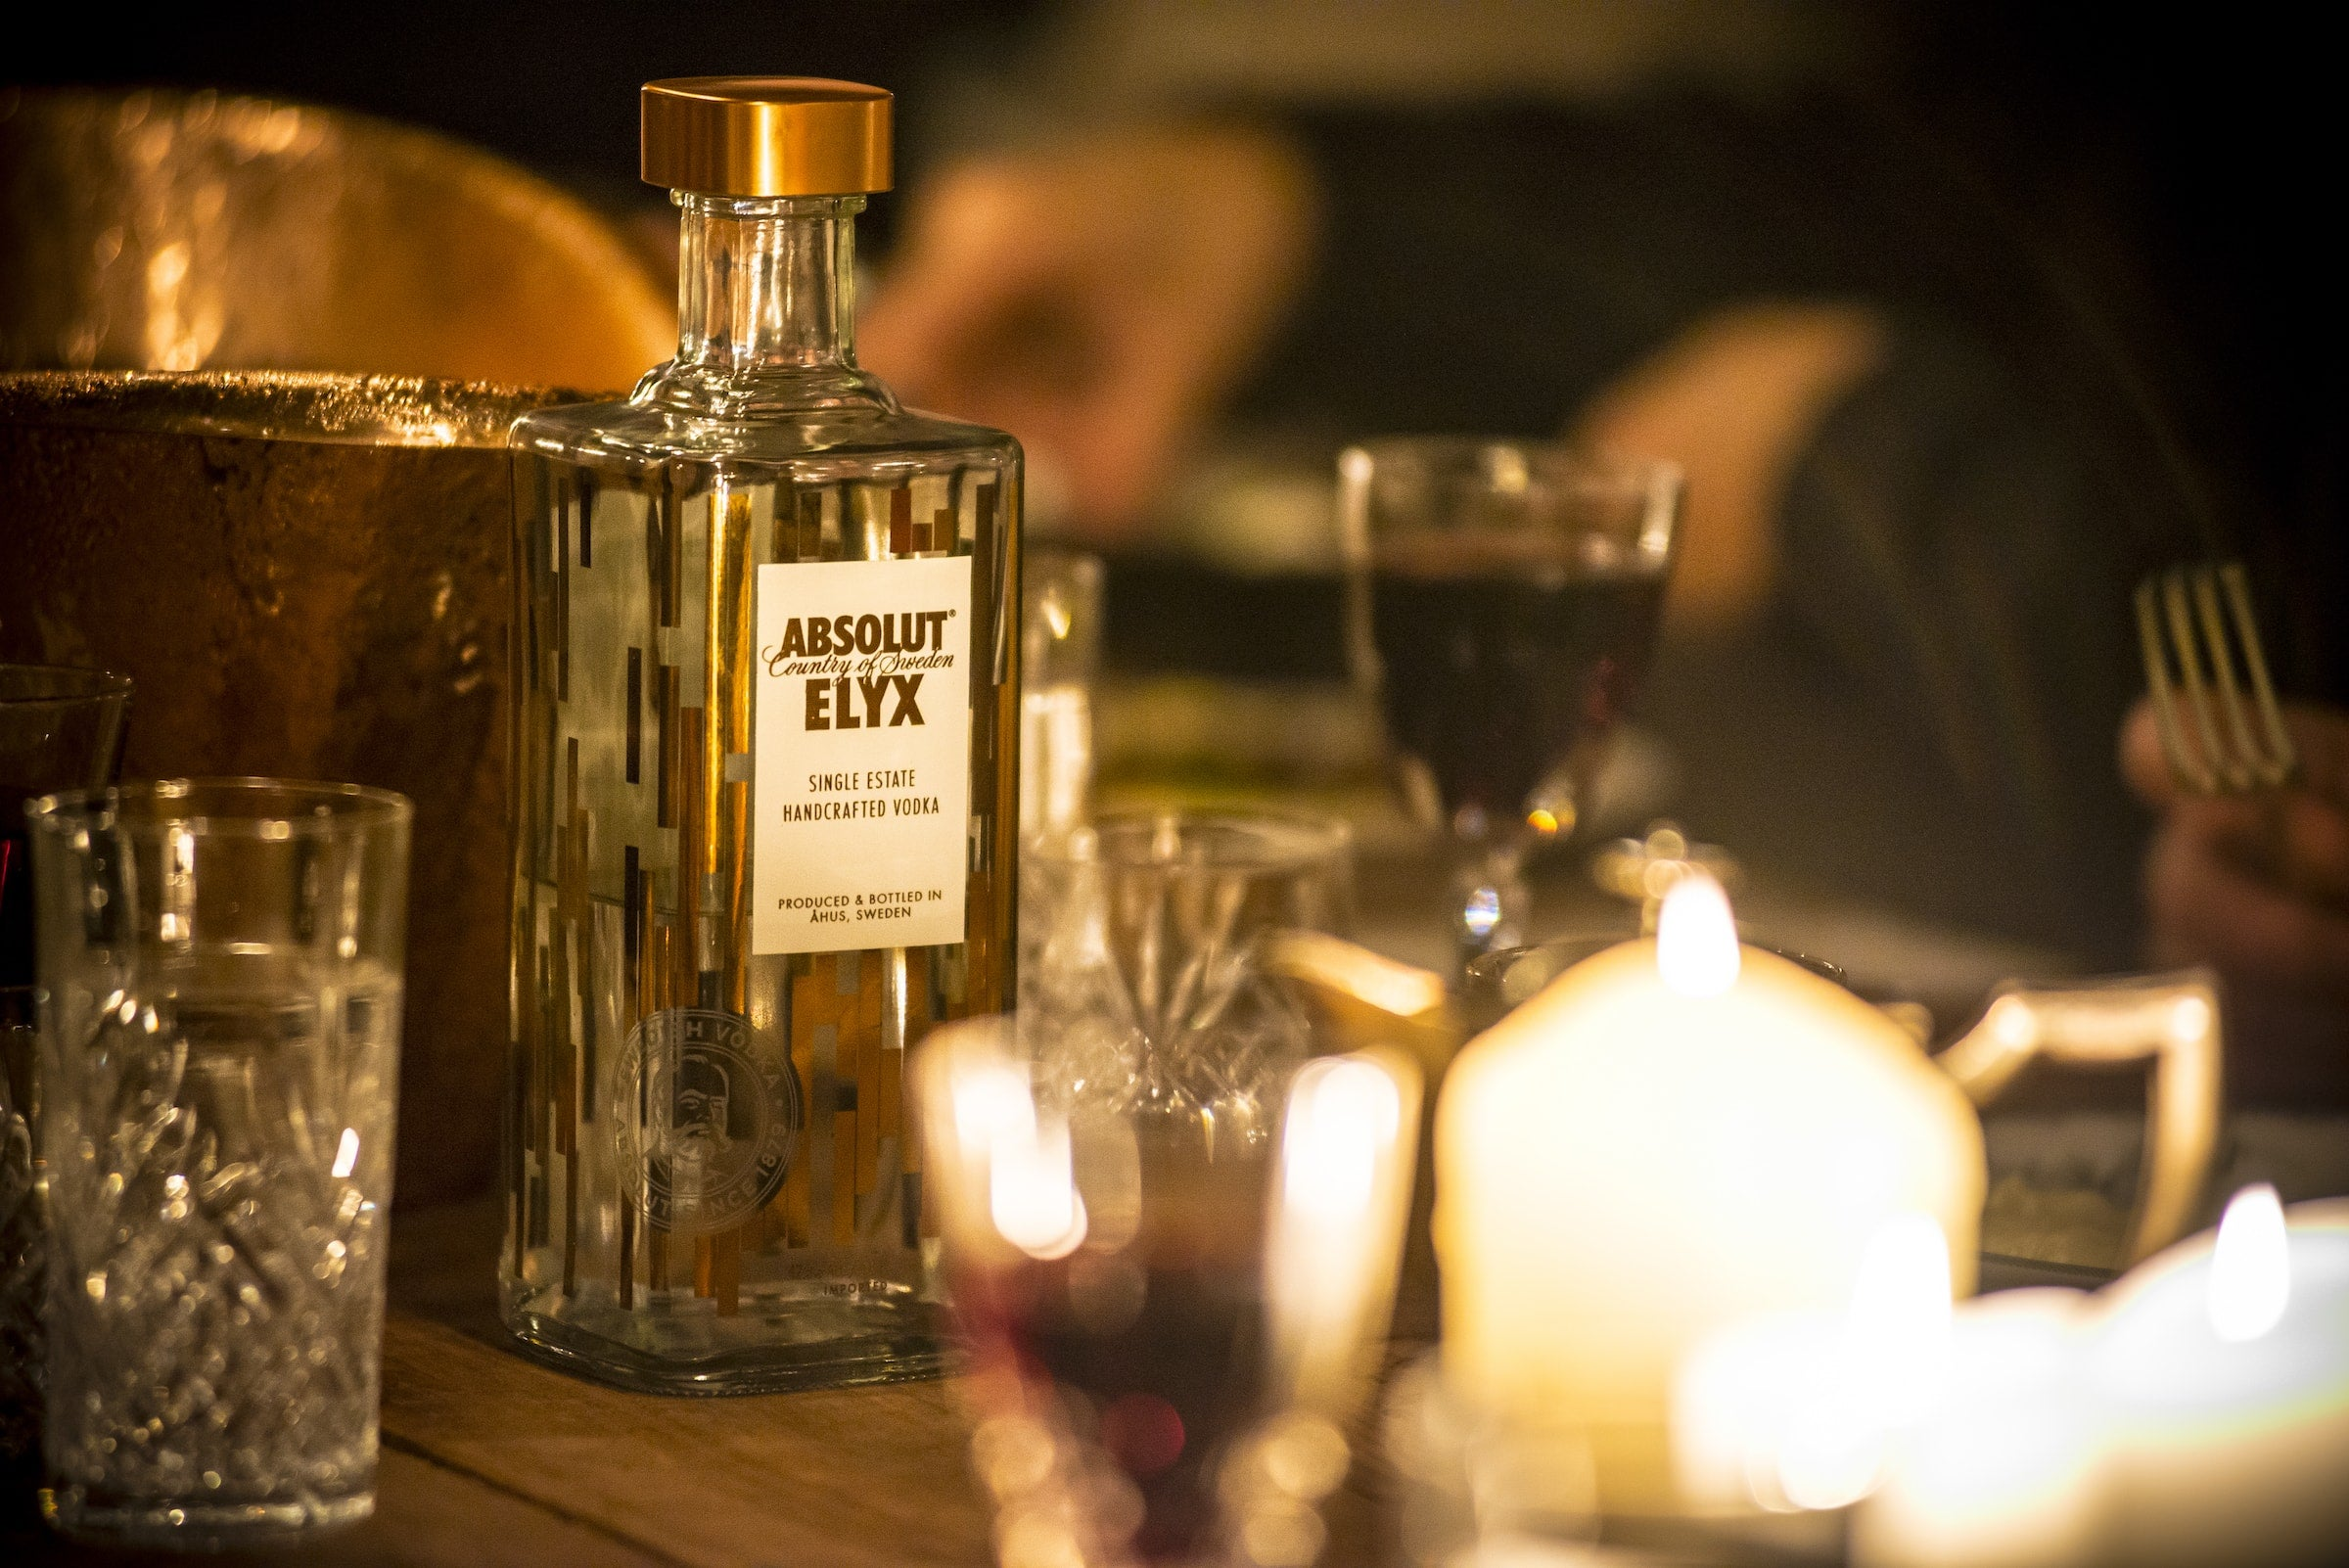 Elyx Bottle at the Hunting Lodge dinner